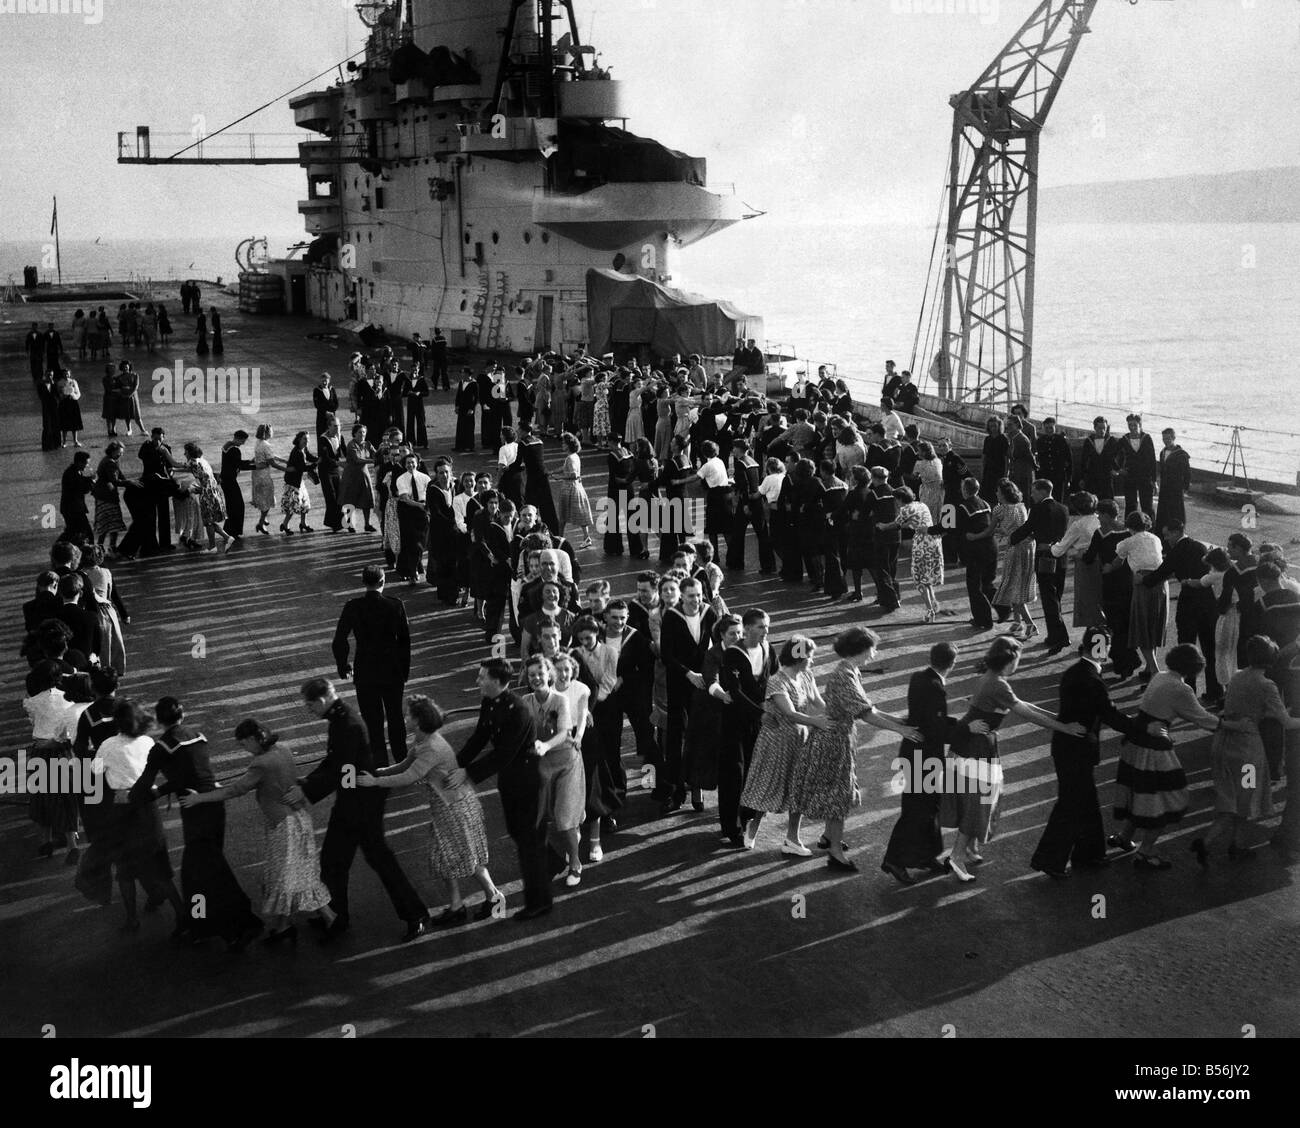 Dance on board H.M.S. Victorious. They are dancing on the deck of the aircraft-carrier H.M.S. Victorious, anchored - Stock Image